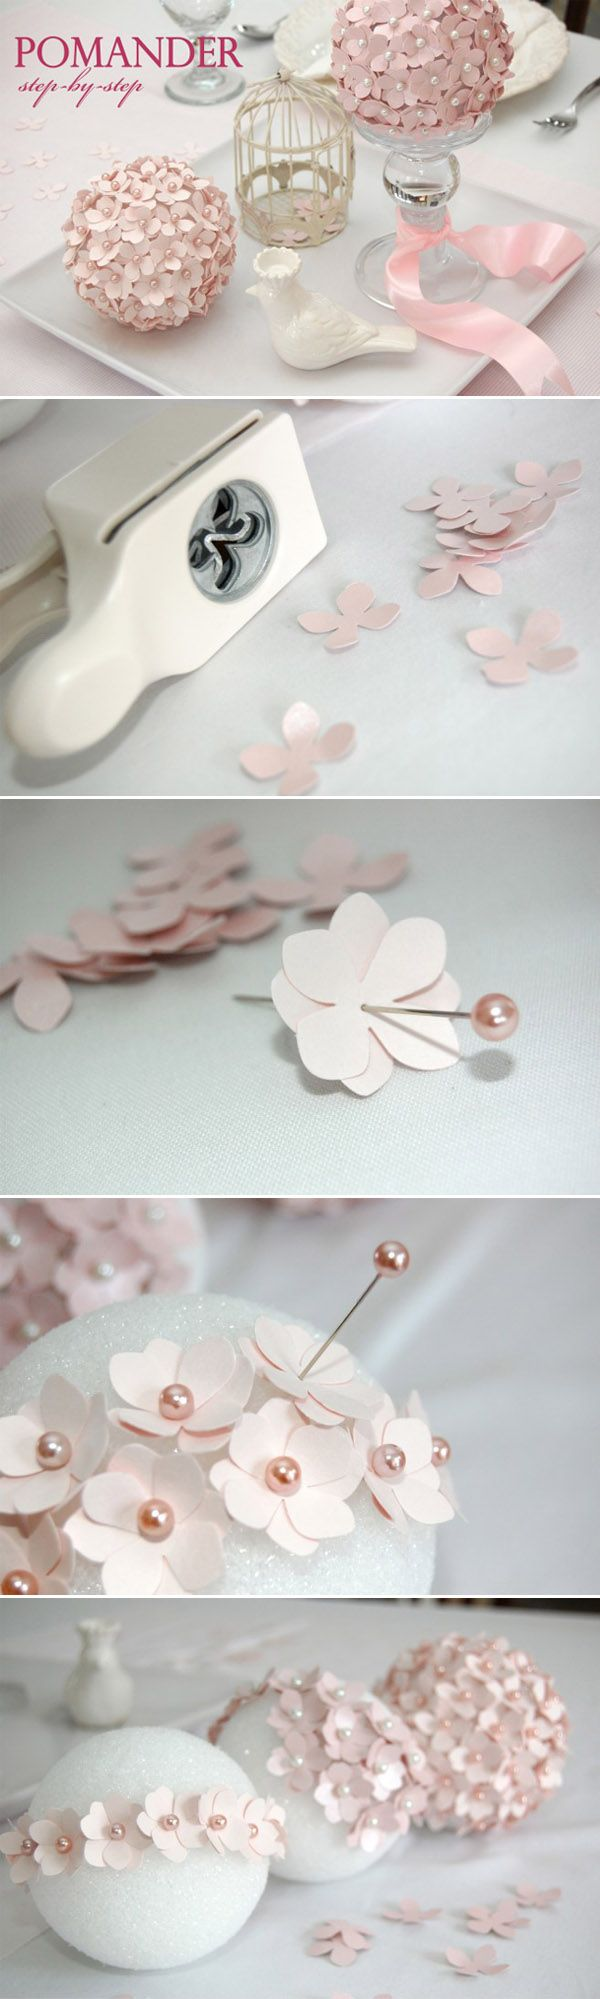 Paper flower balls diy instructions flower ball wedding paper flower balls diy instructions easy video instructions mightylinksfo